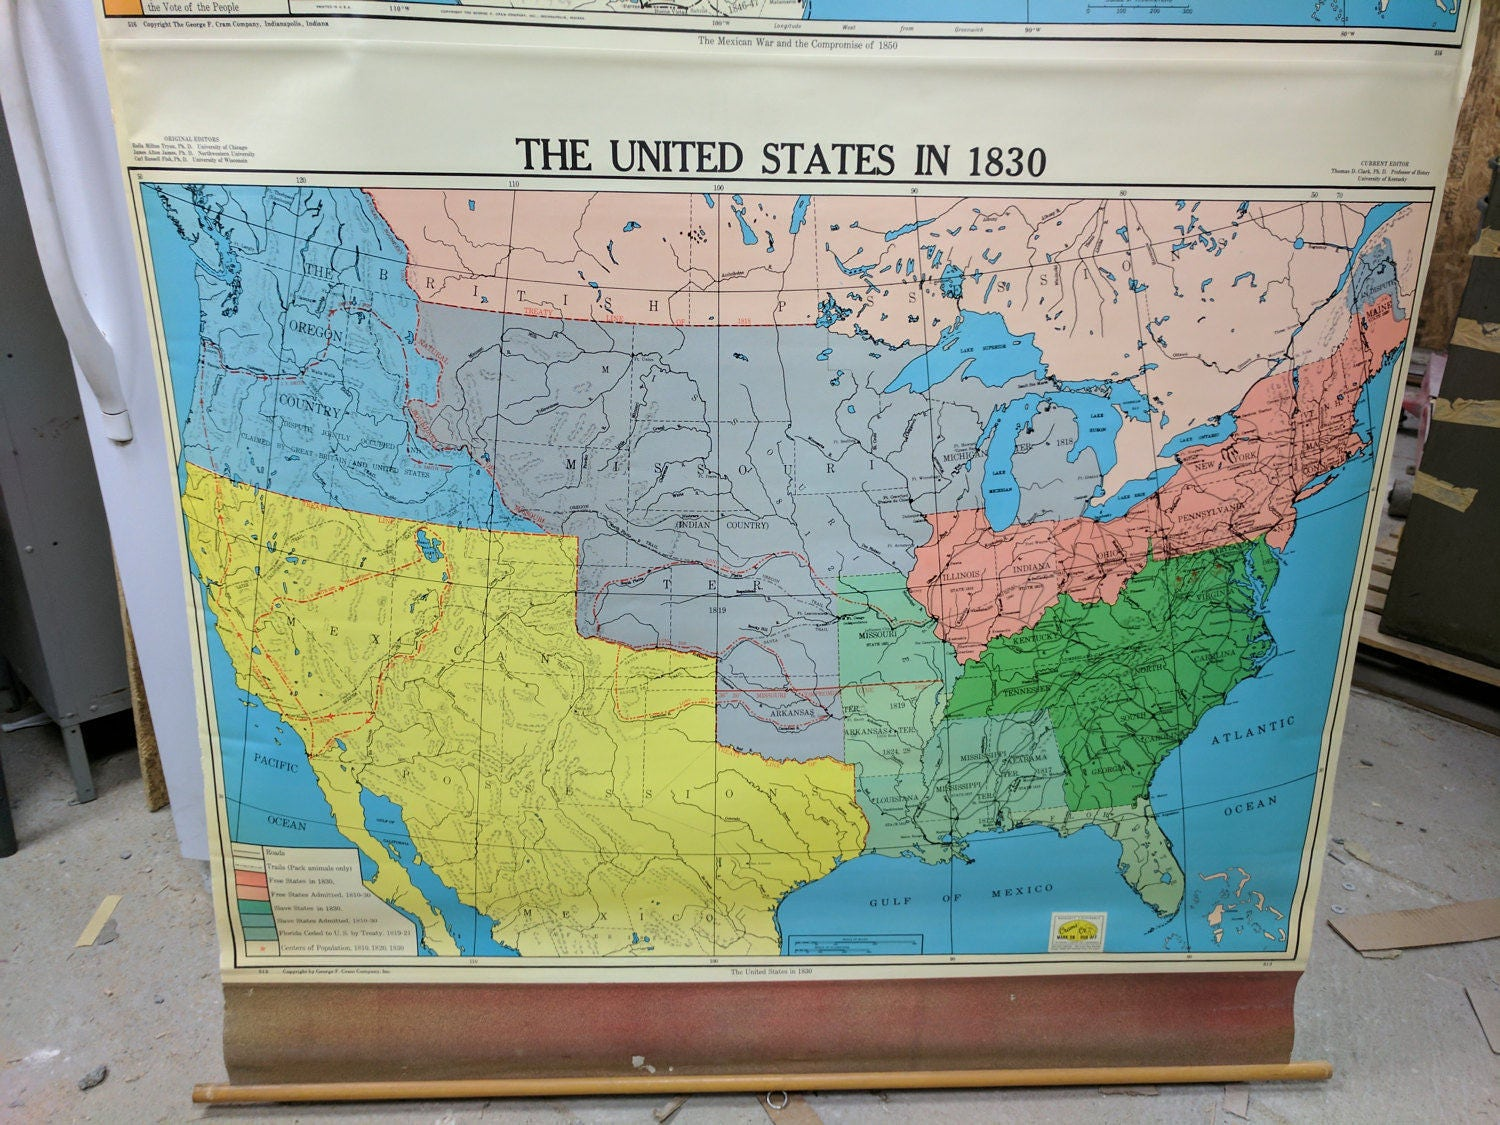 Vintage Classroom School Map US Map - Map of the us in 1830